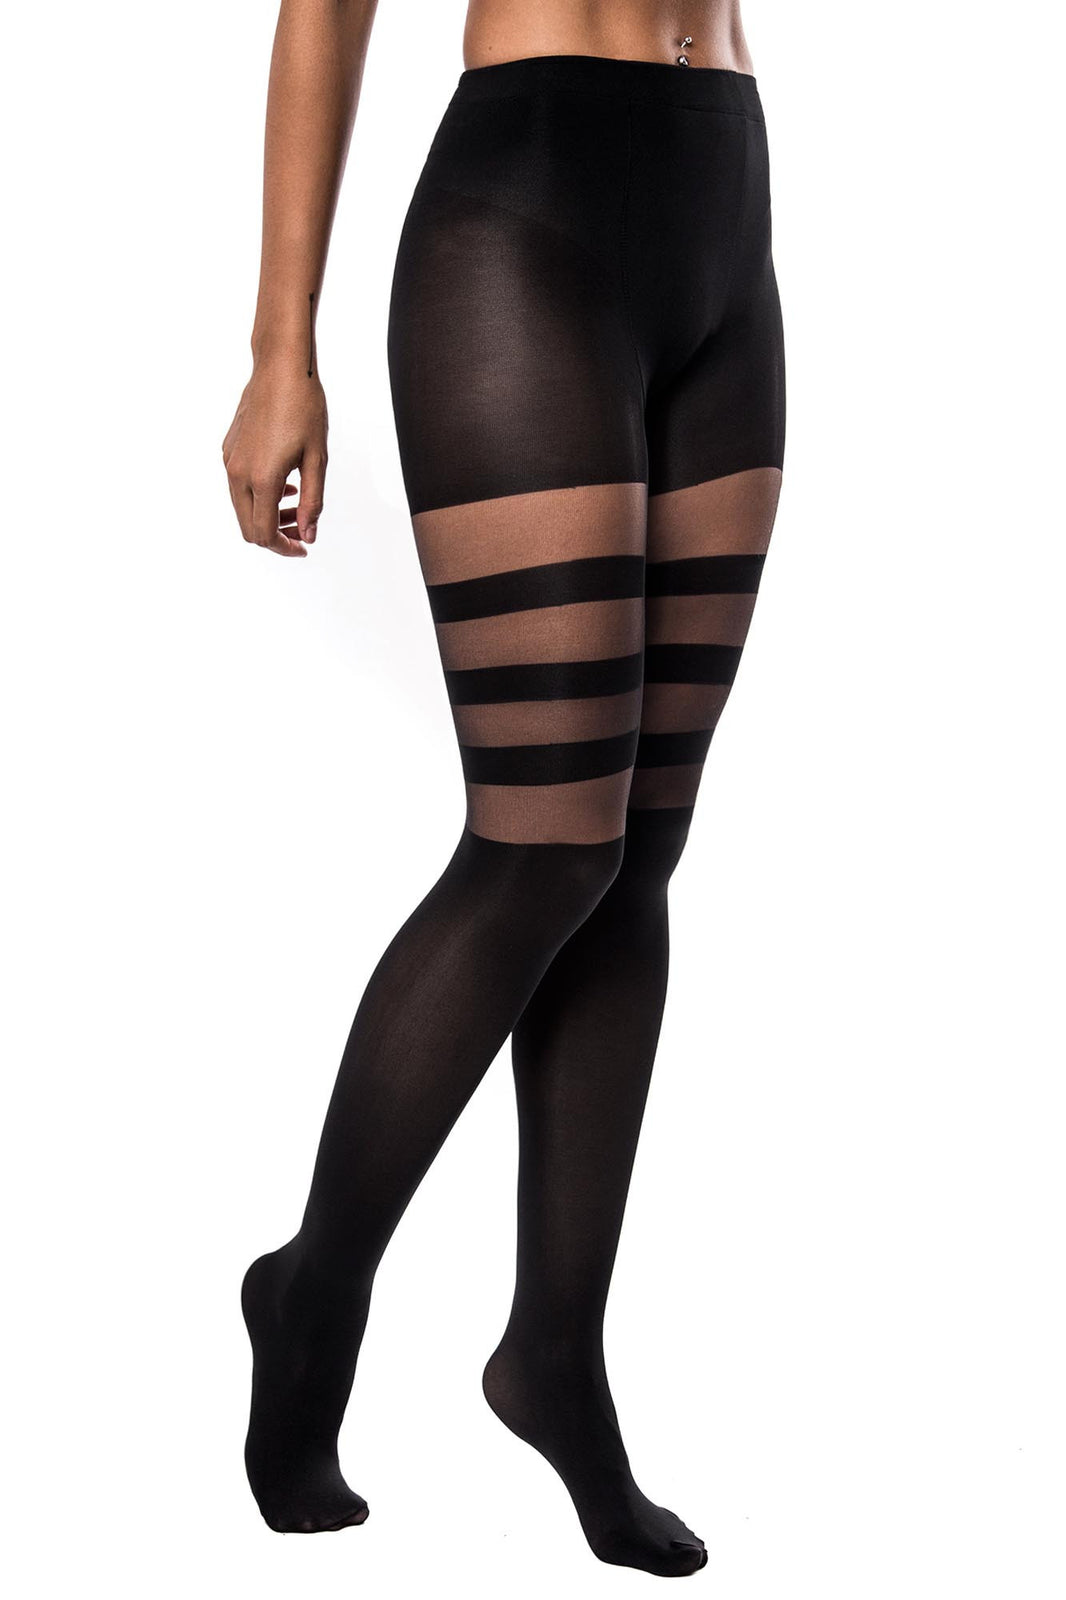 Underworld Tights [B]